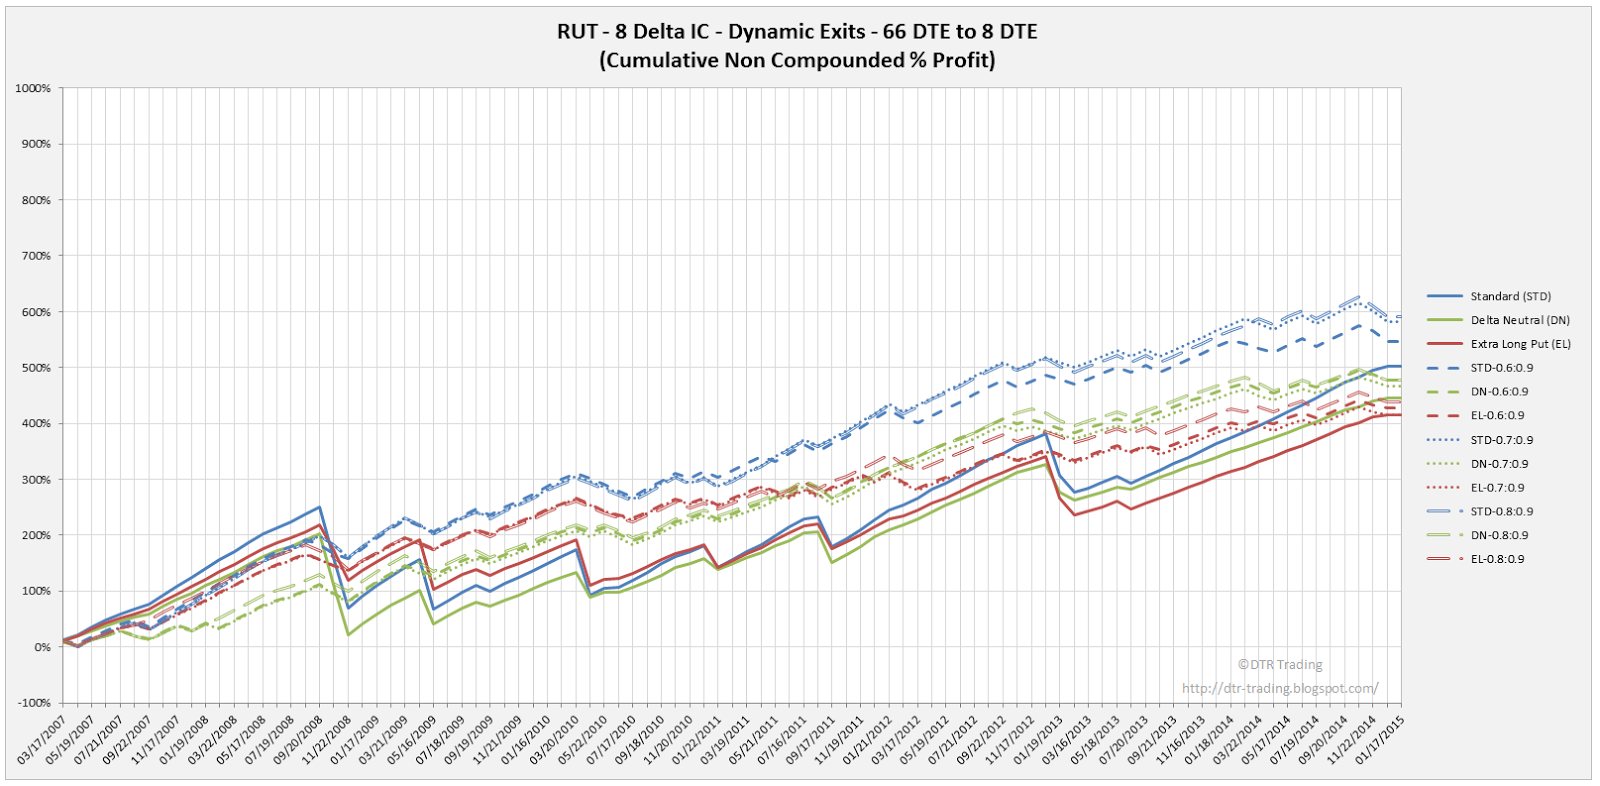 Iron Condor Dynamic Exit Equity Curves RUT 66 DTE 8 Delta Risk:Reward Versions